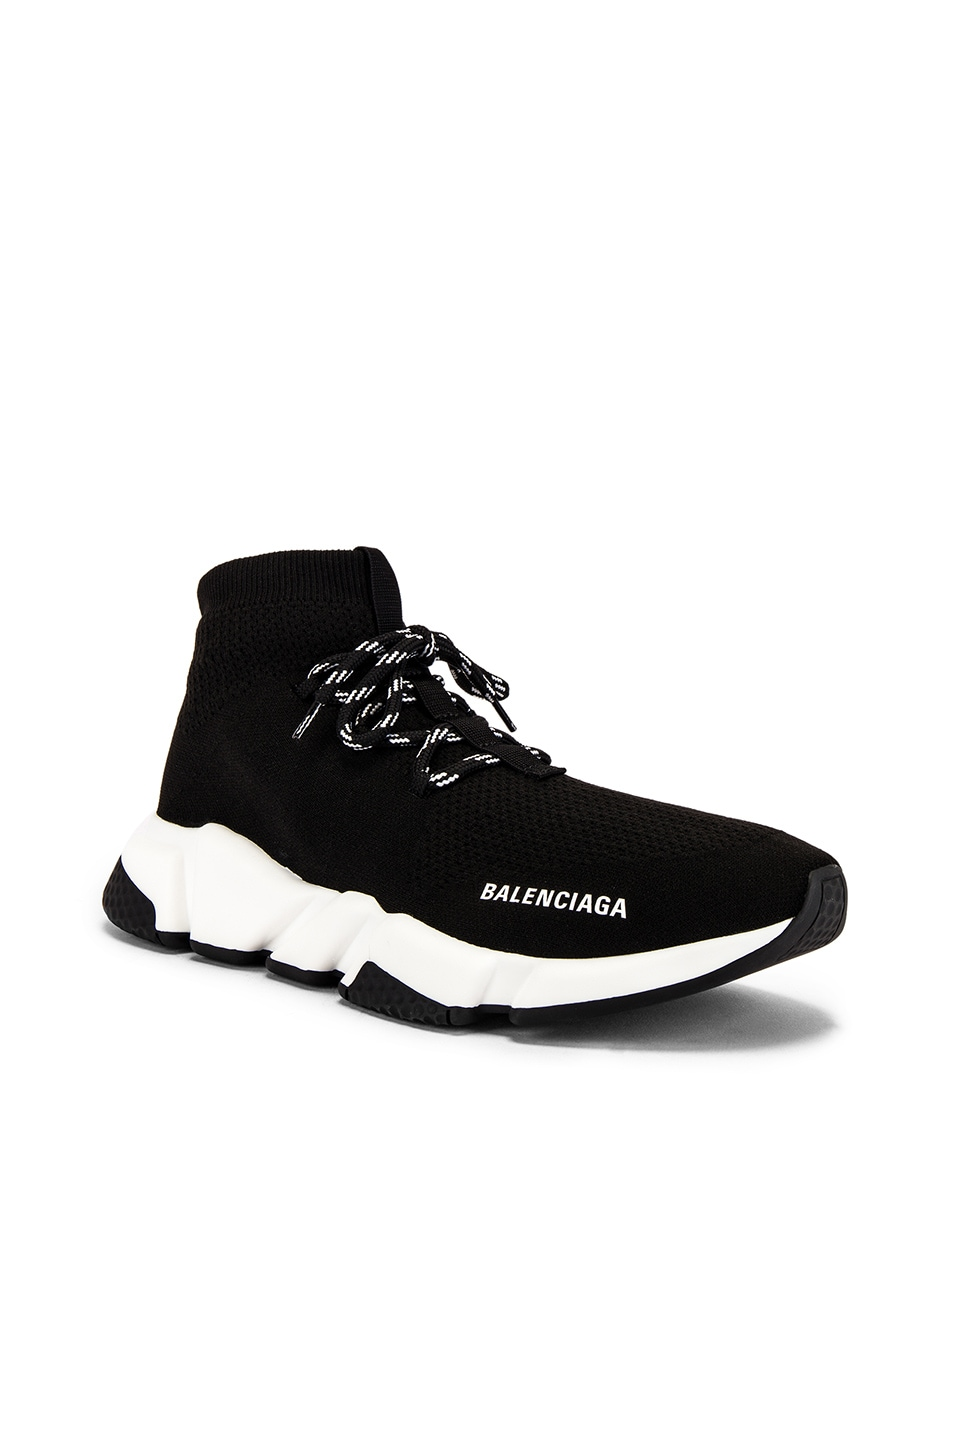 Image 1 of Balenciaga Speed Light Lace-Up Sneaker in Black